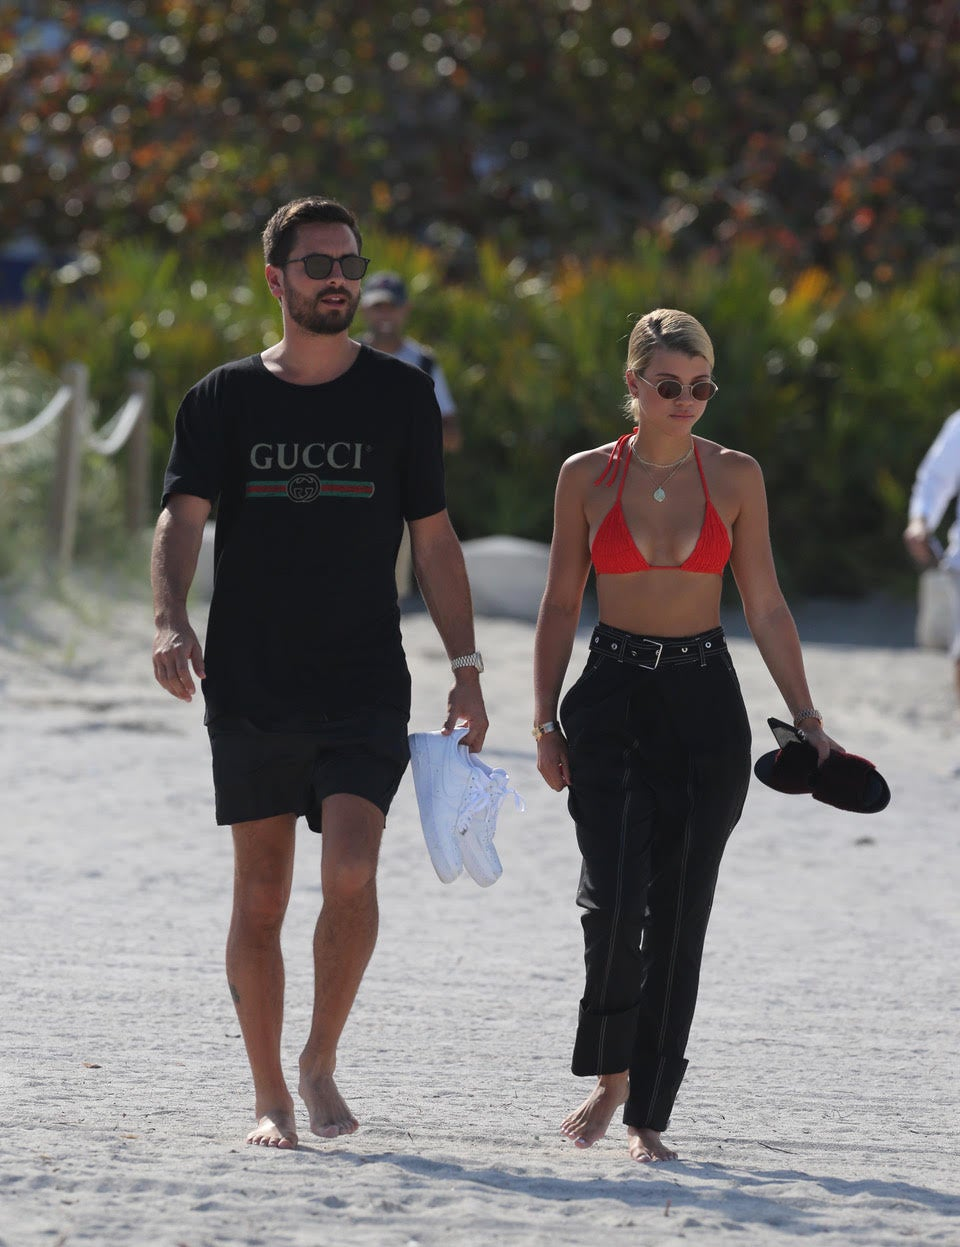 Scott Disick Parties In Miami Following Ex Kourtney Kardashian Sex Remarks